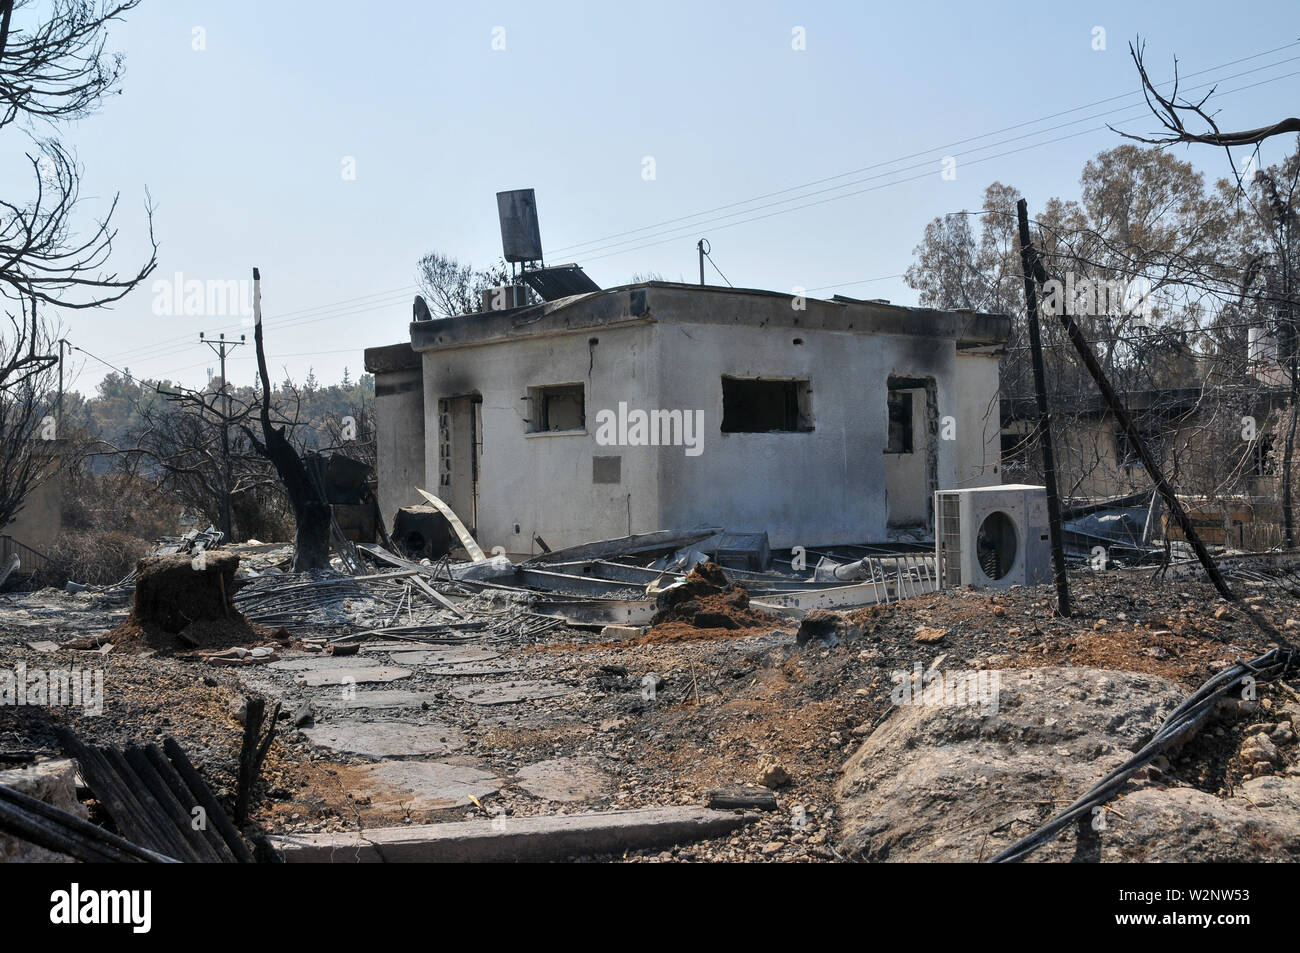 On May 23 2019, a forest fire devastated the village of Mevo Modiim, Israel. Exterior of a burnt home - Stock Image